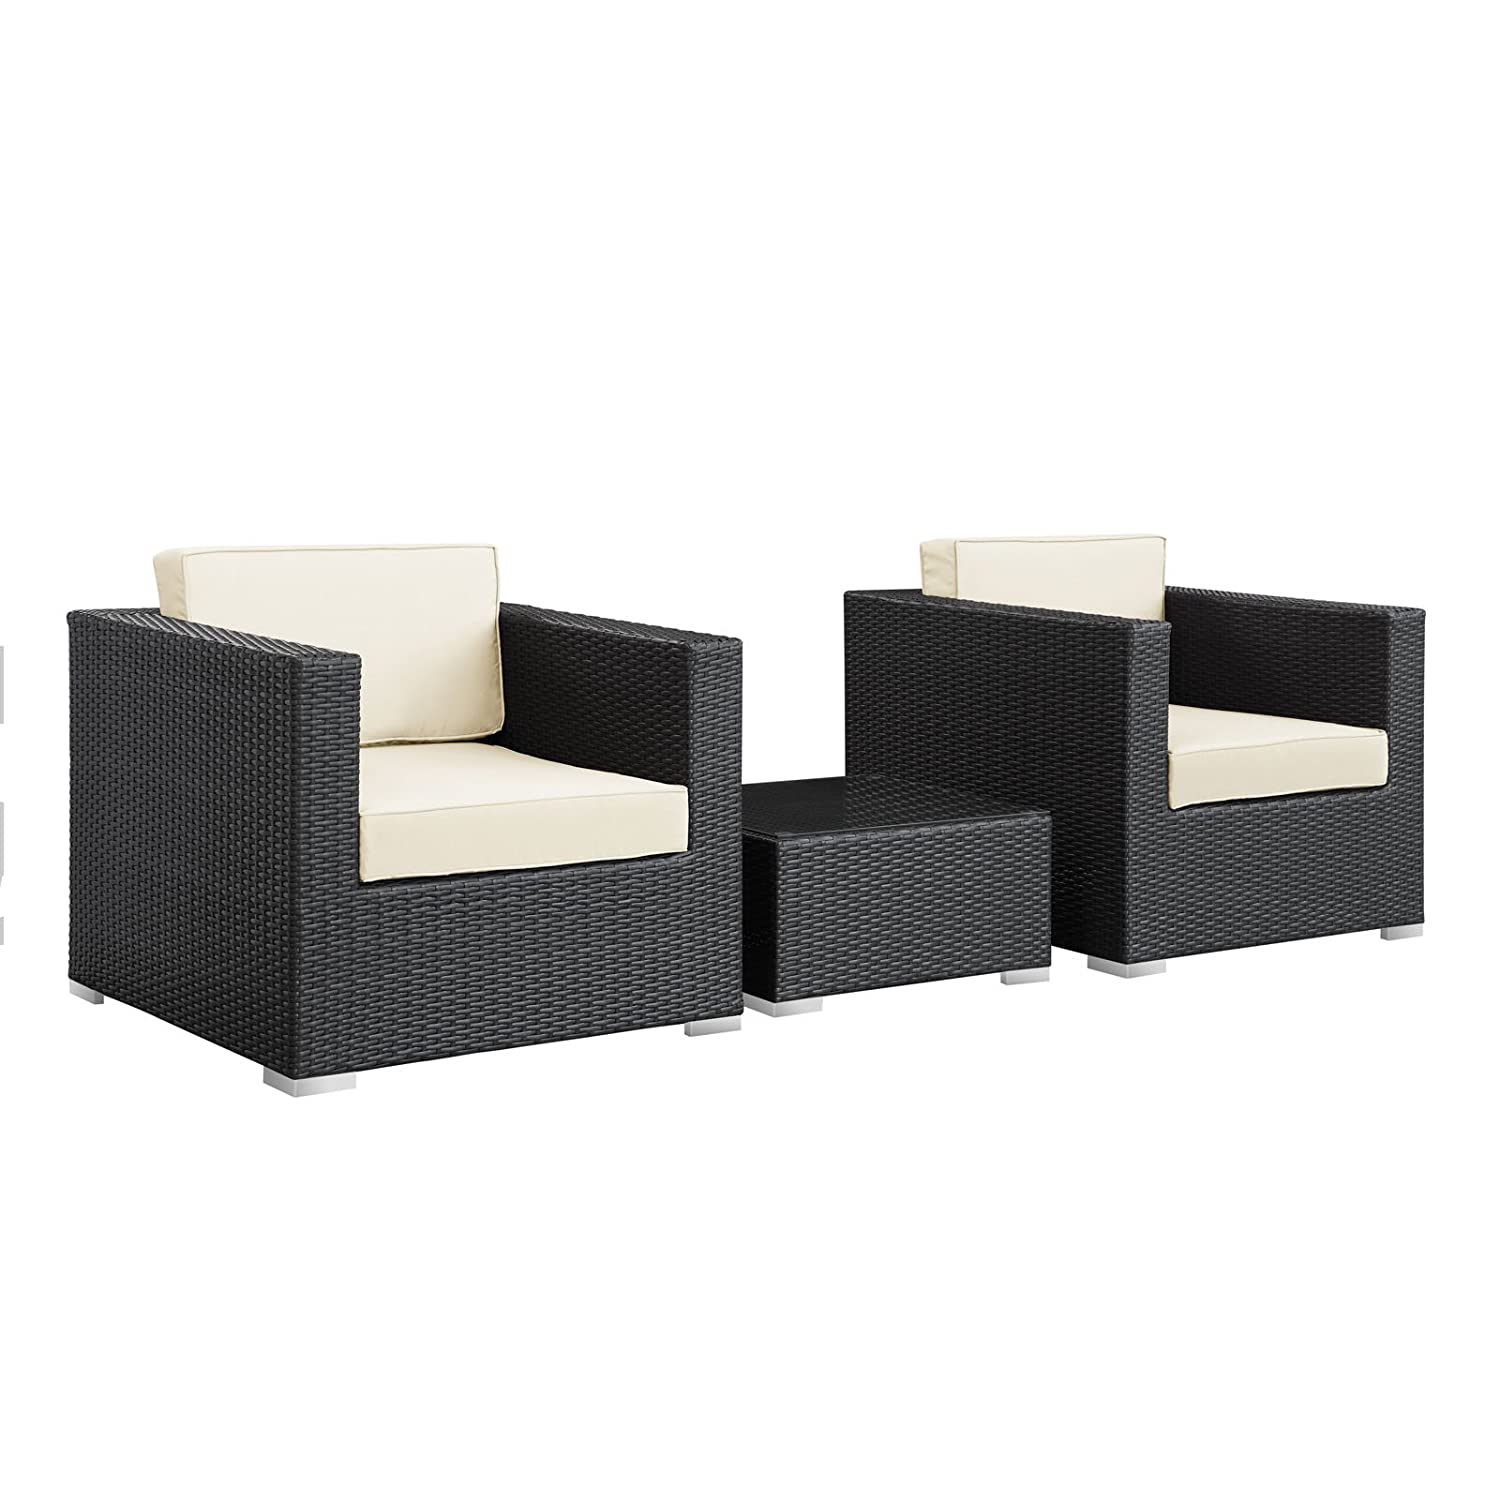 Furniture of america chaves contemporary 3 piece sofa set - Amazon Com Modway Burrow 3 Piece Espresso Patio Sectional Set With White Cushions Patio Sofas Garden Outdoor